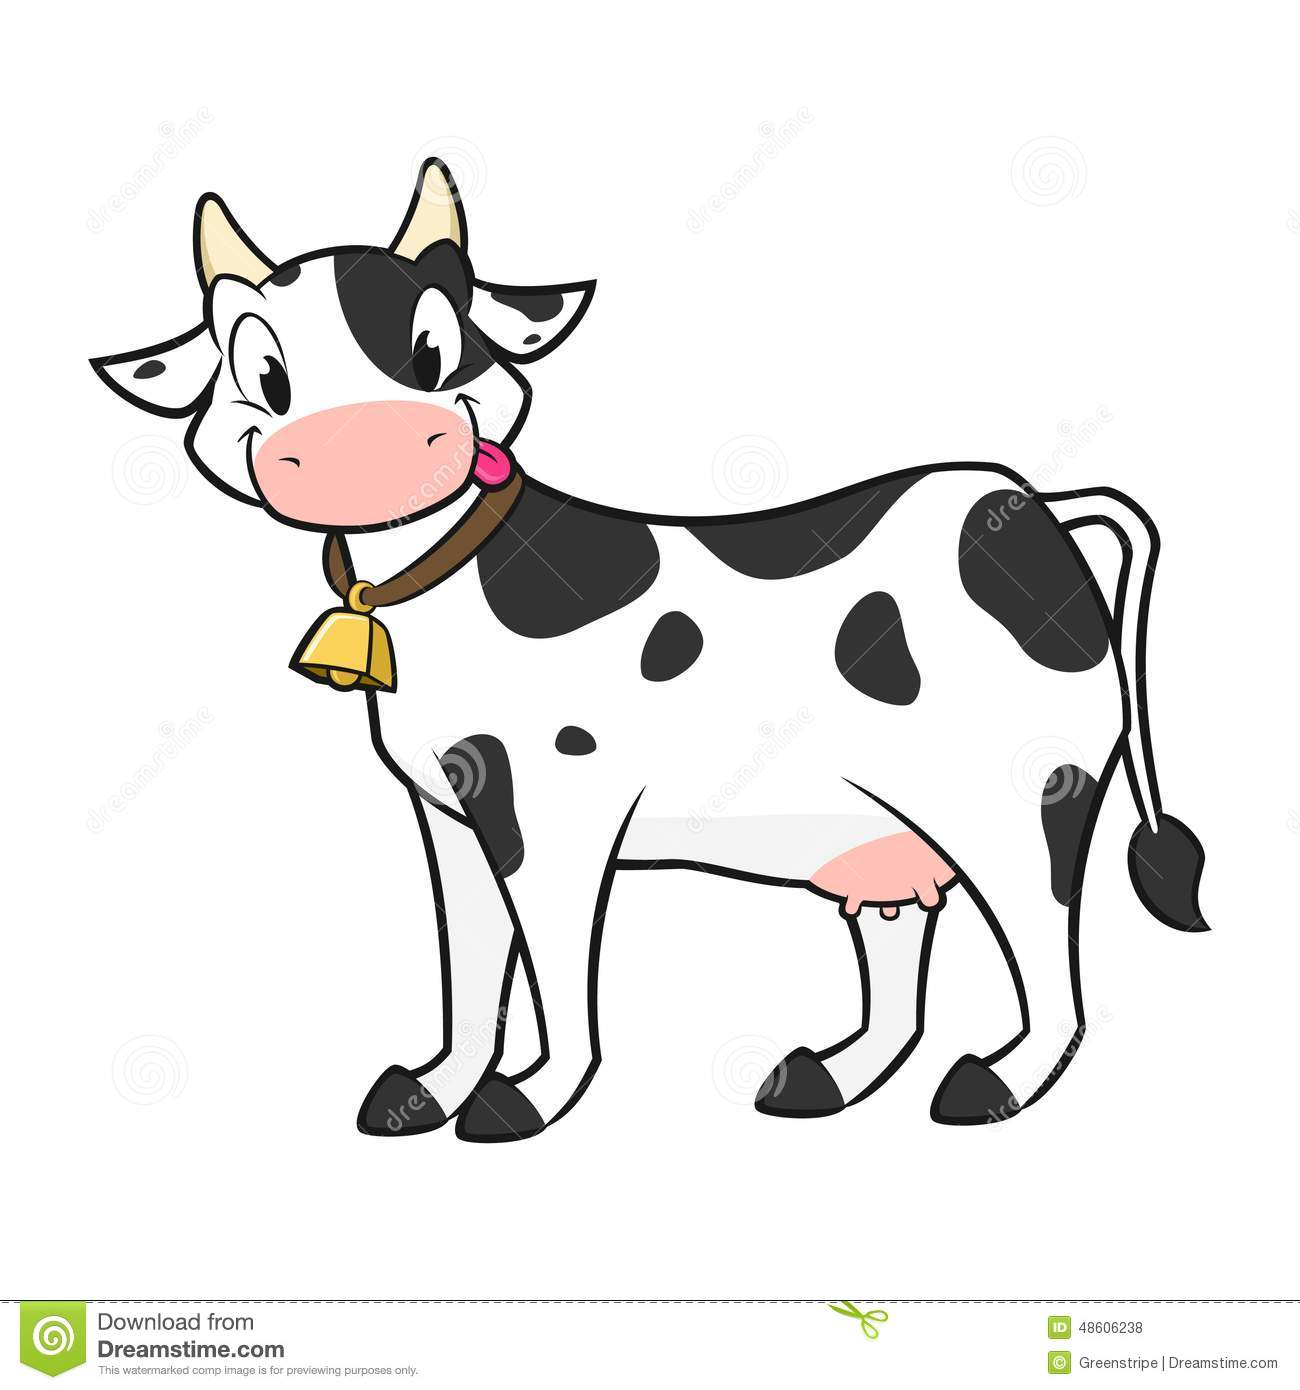 Vache dessin anim illustration de vecteur illustration - Dessin d une vache ...